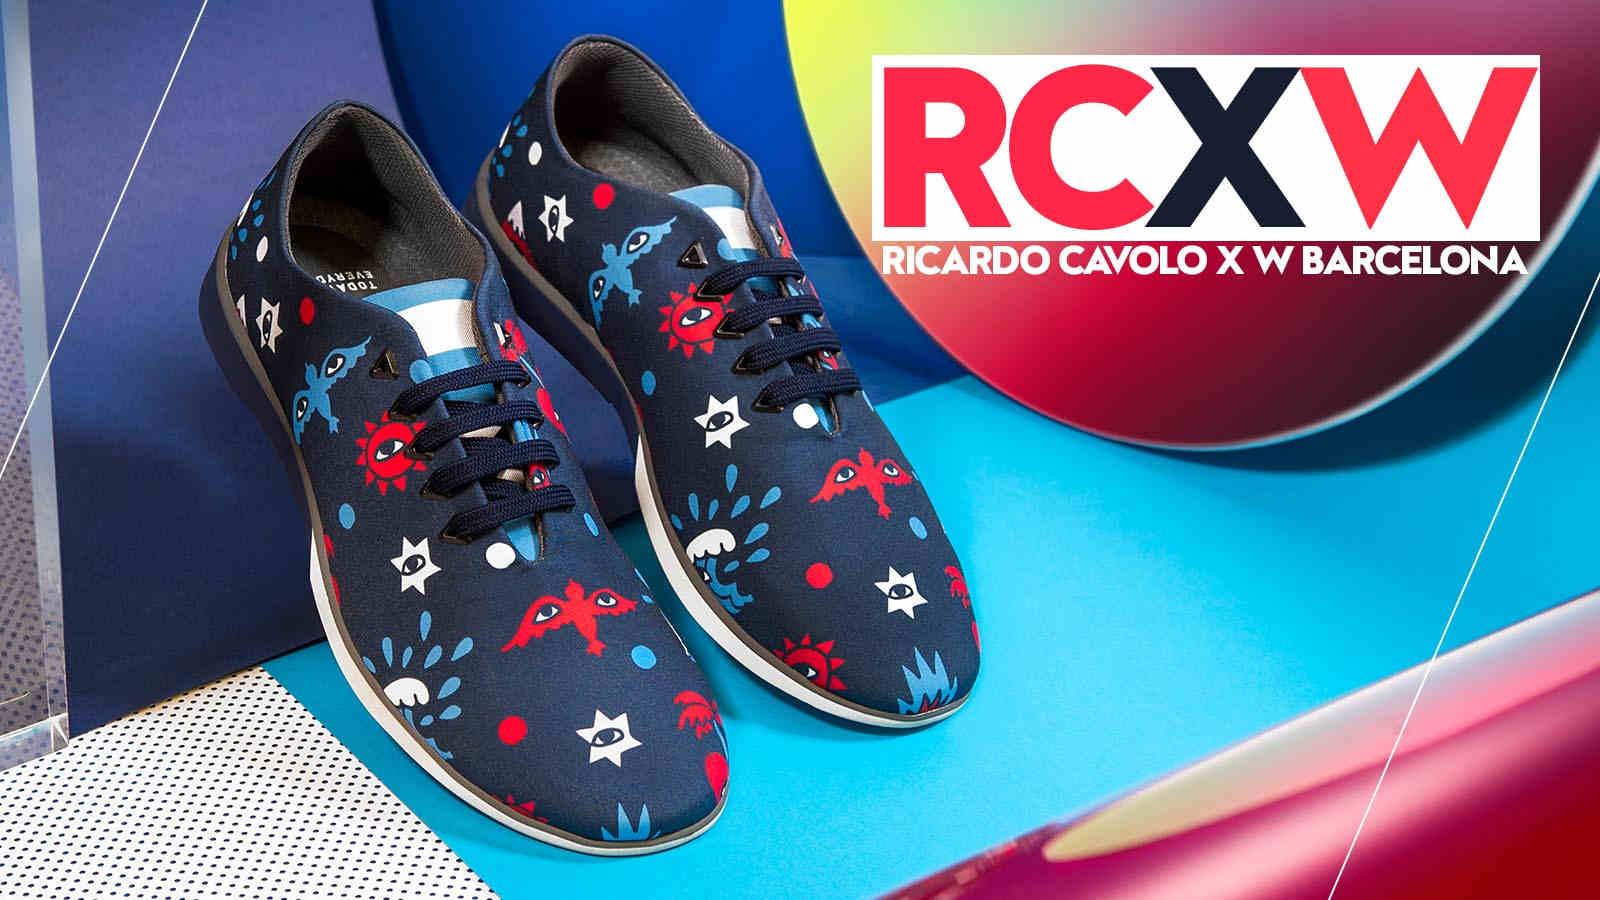 Limited edition sneakers designed by Ricardo Cavolo exclusively for W Barcelona